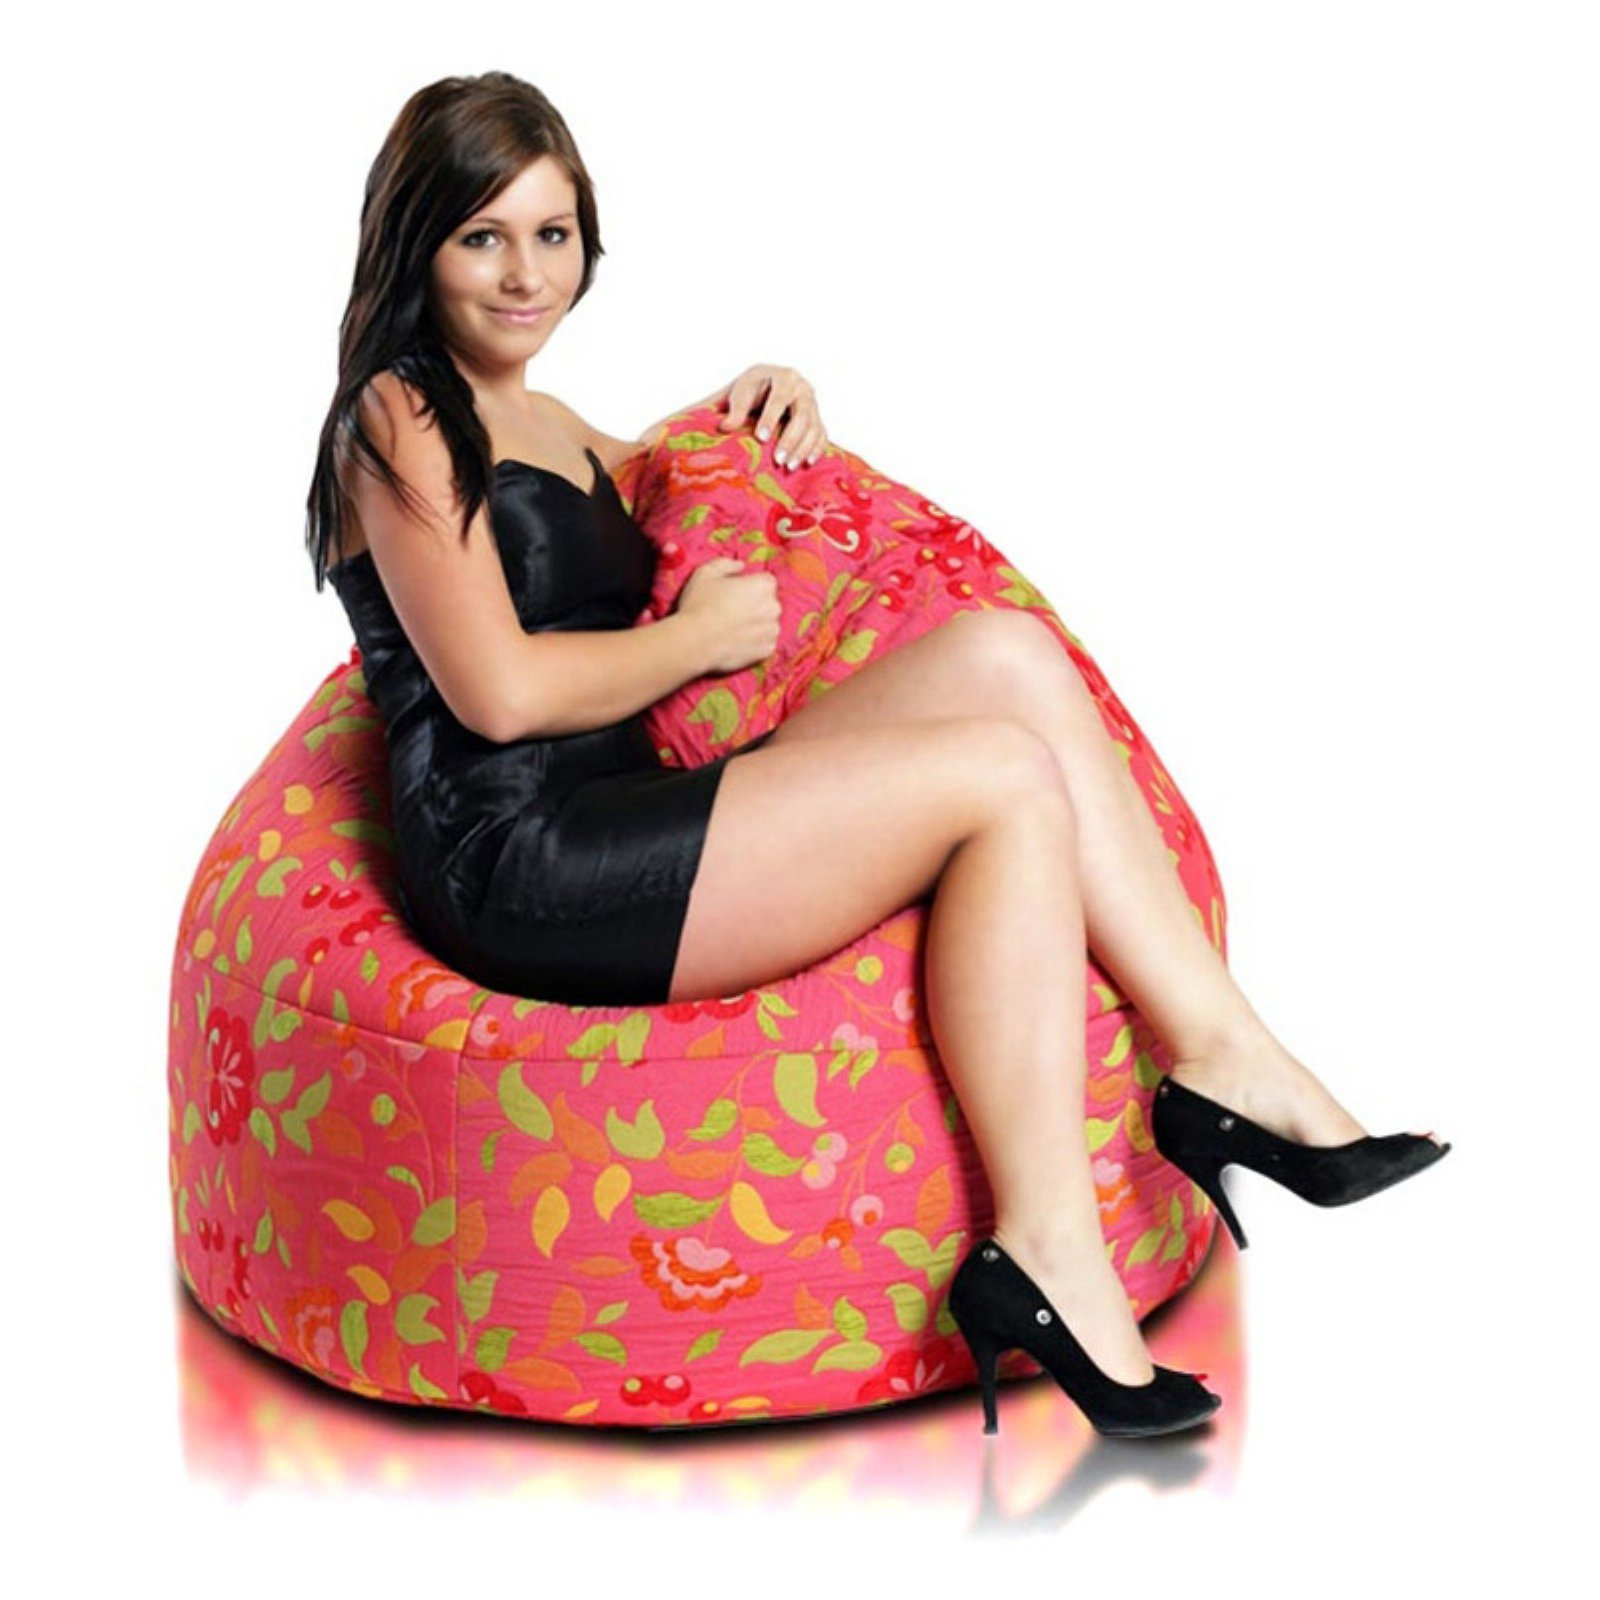 Turbo Beanbags Cake Premium Large Bean Bag Chair - Souvenir Pink